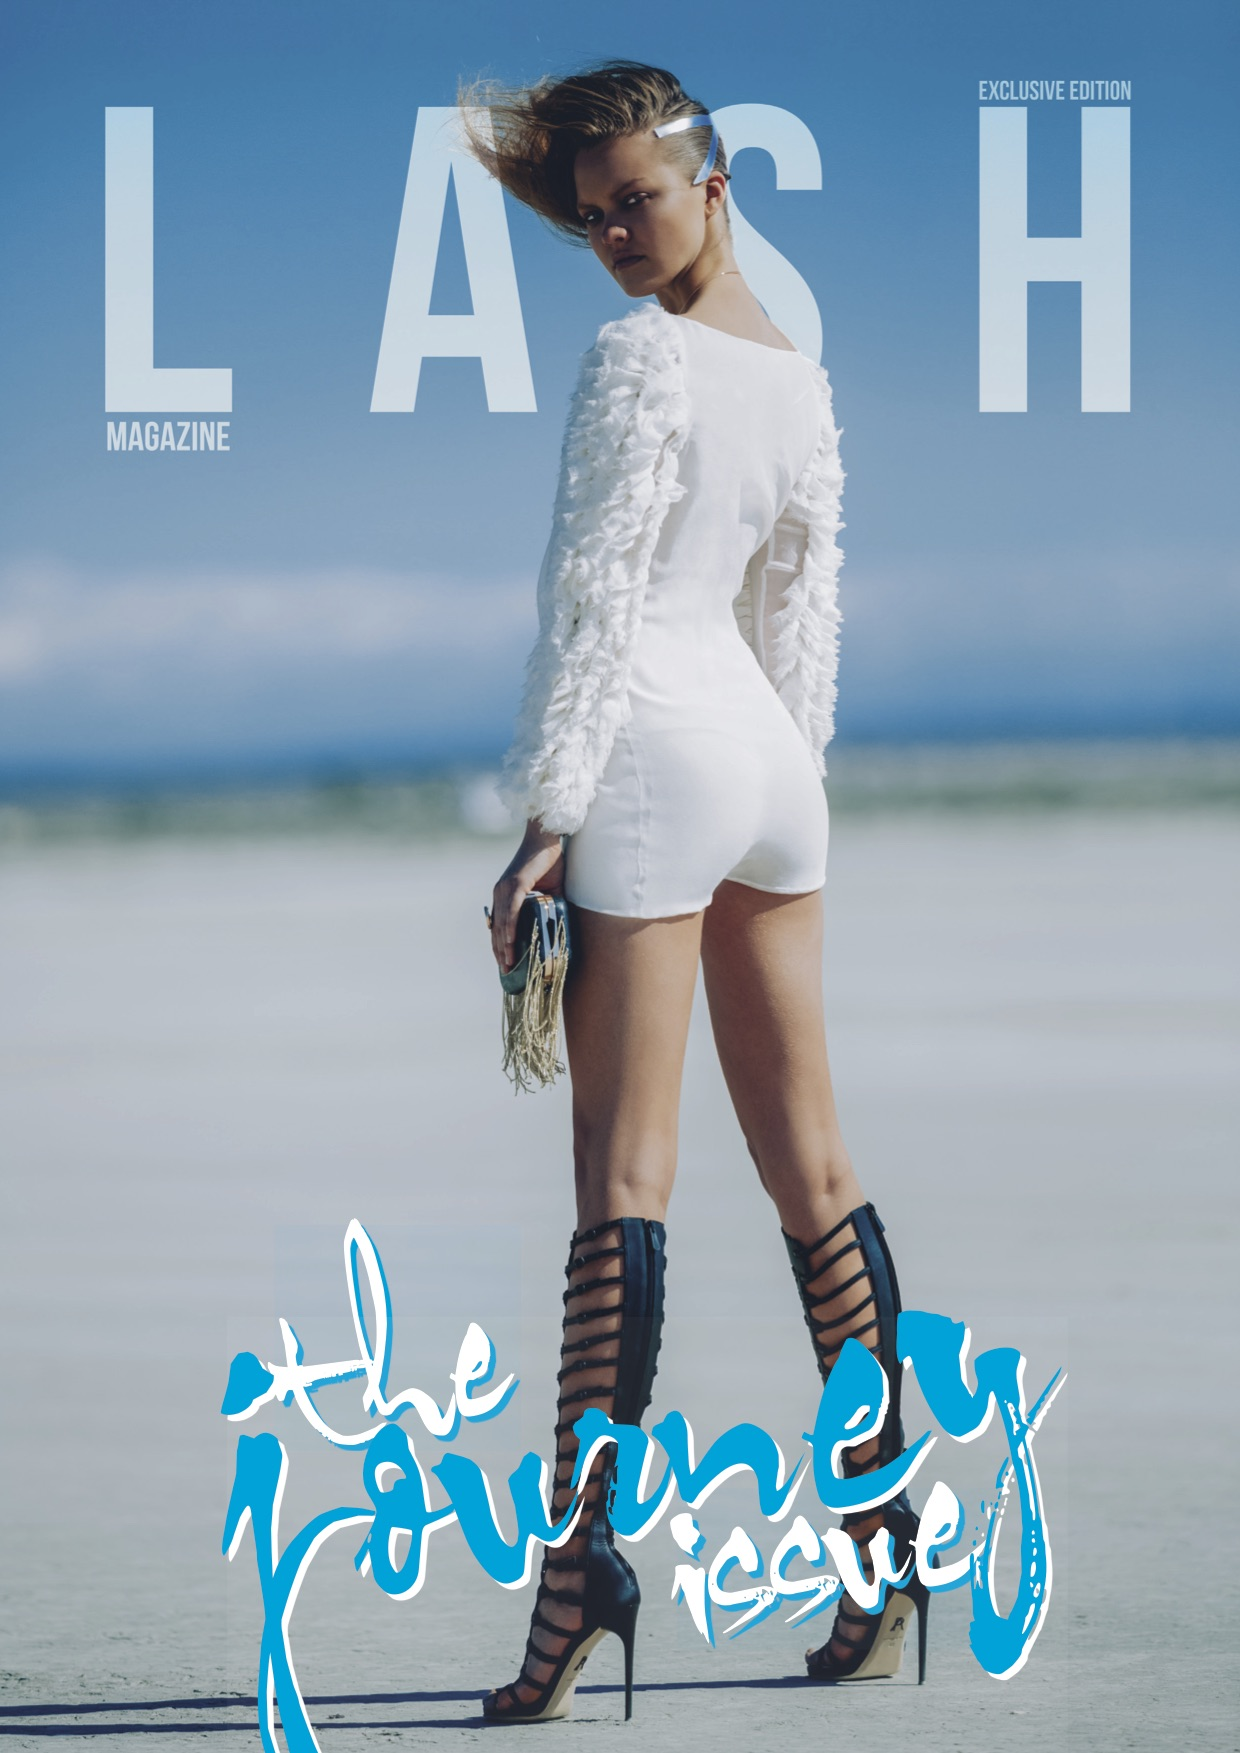 Lash Journey Issue Cover